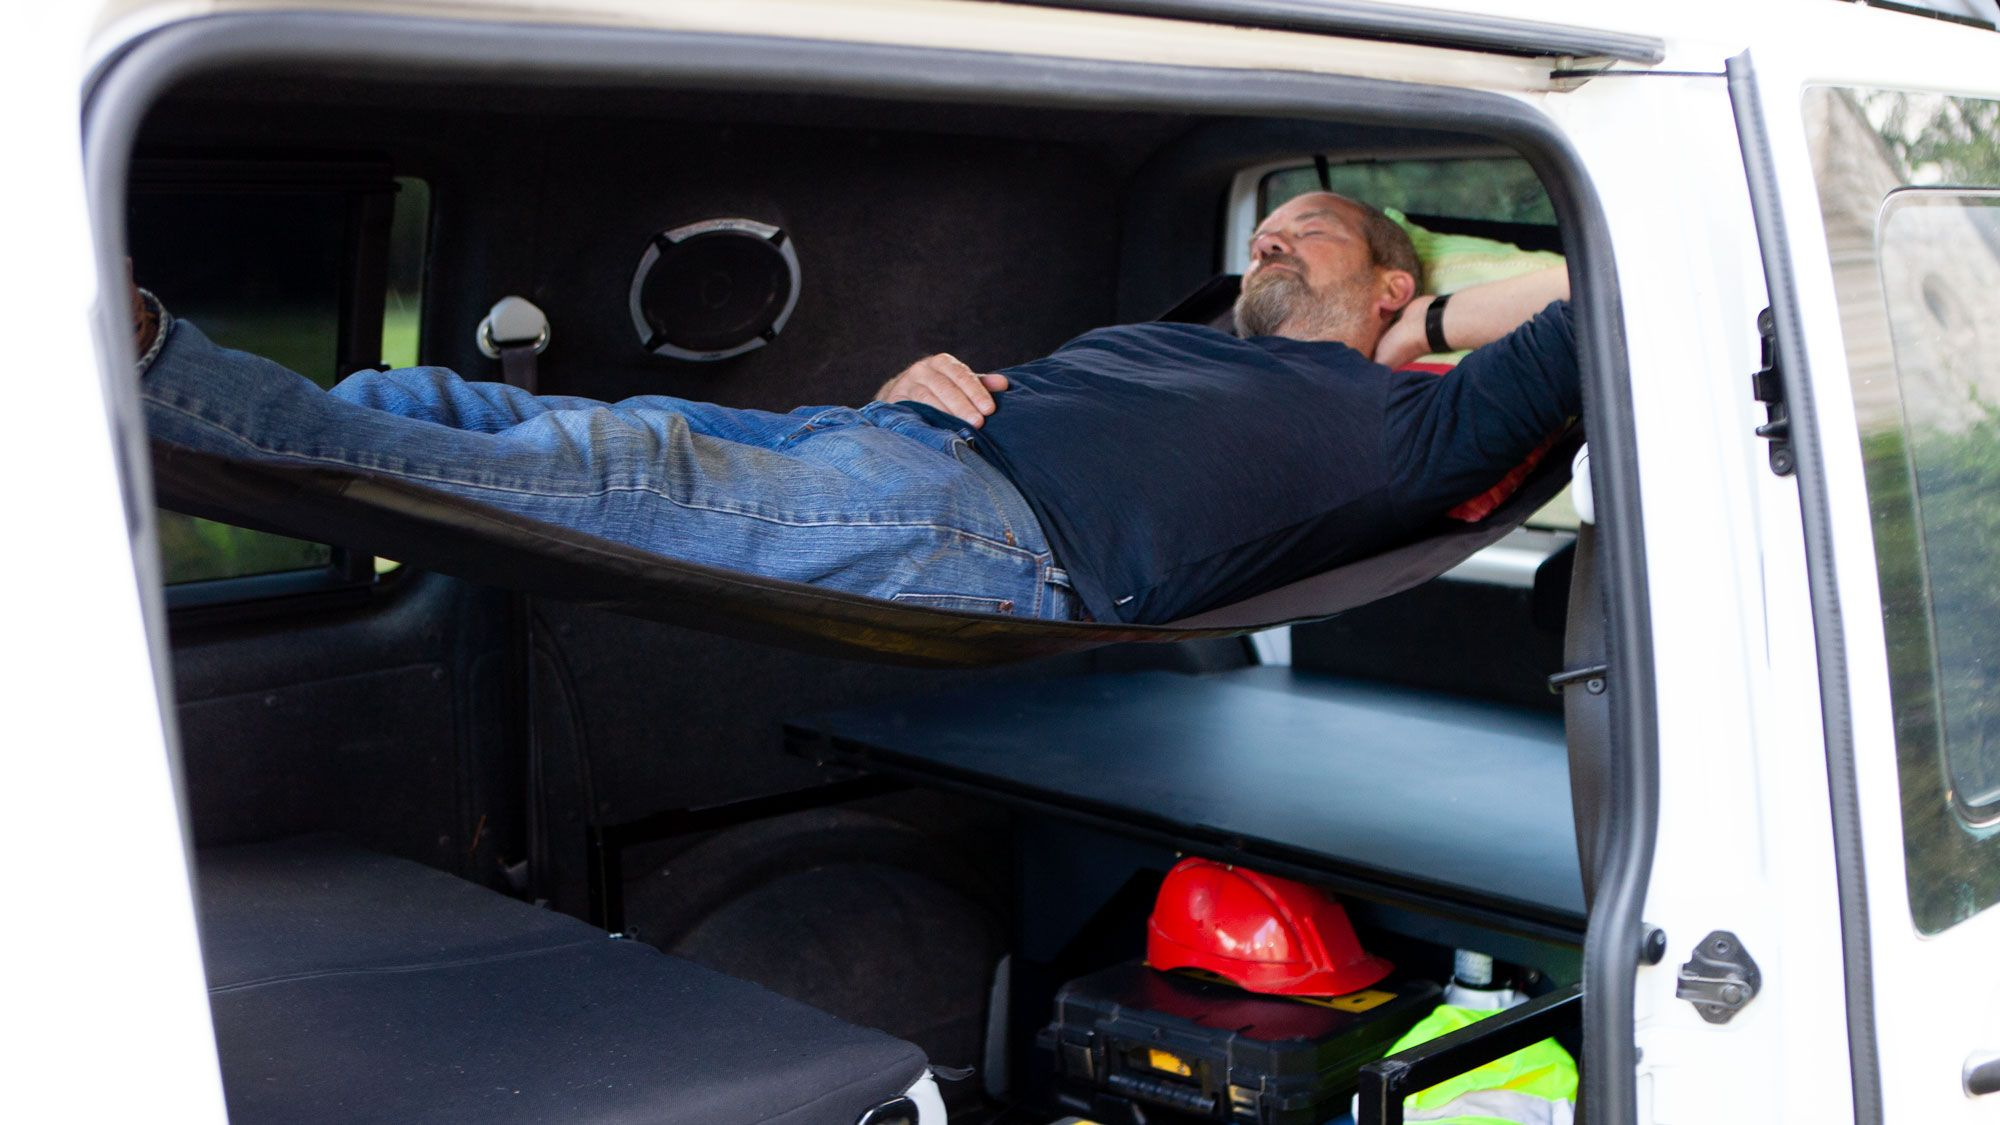 Highway hammocks according to a national poll over 13 of